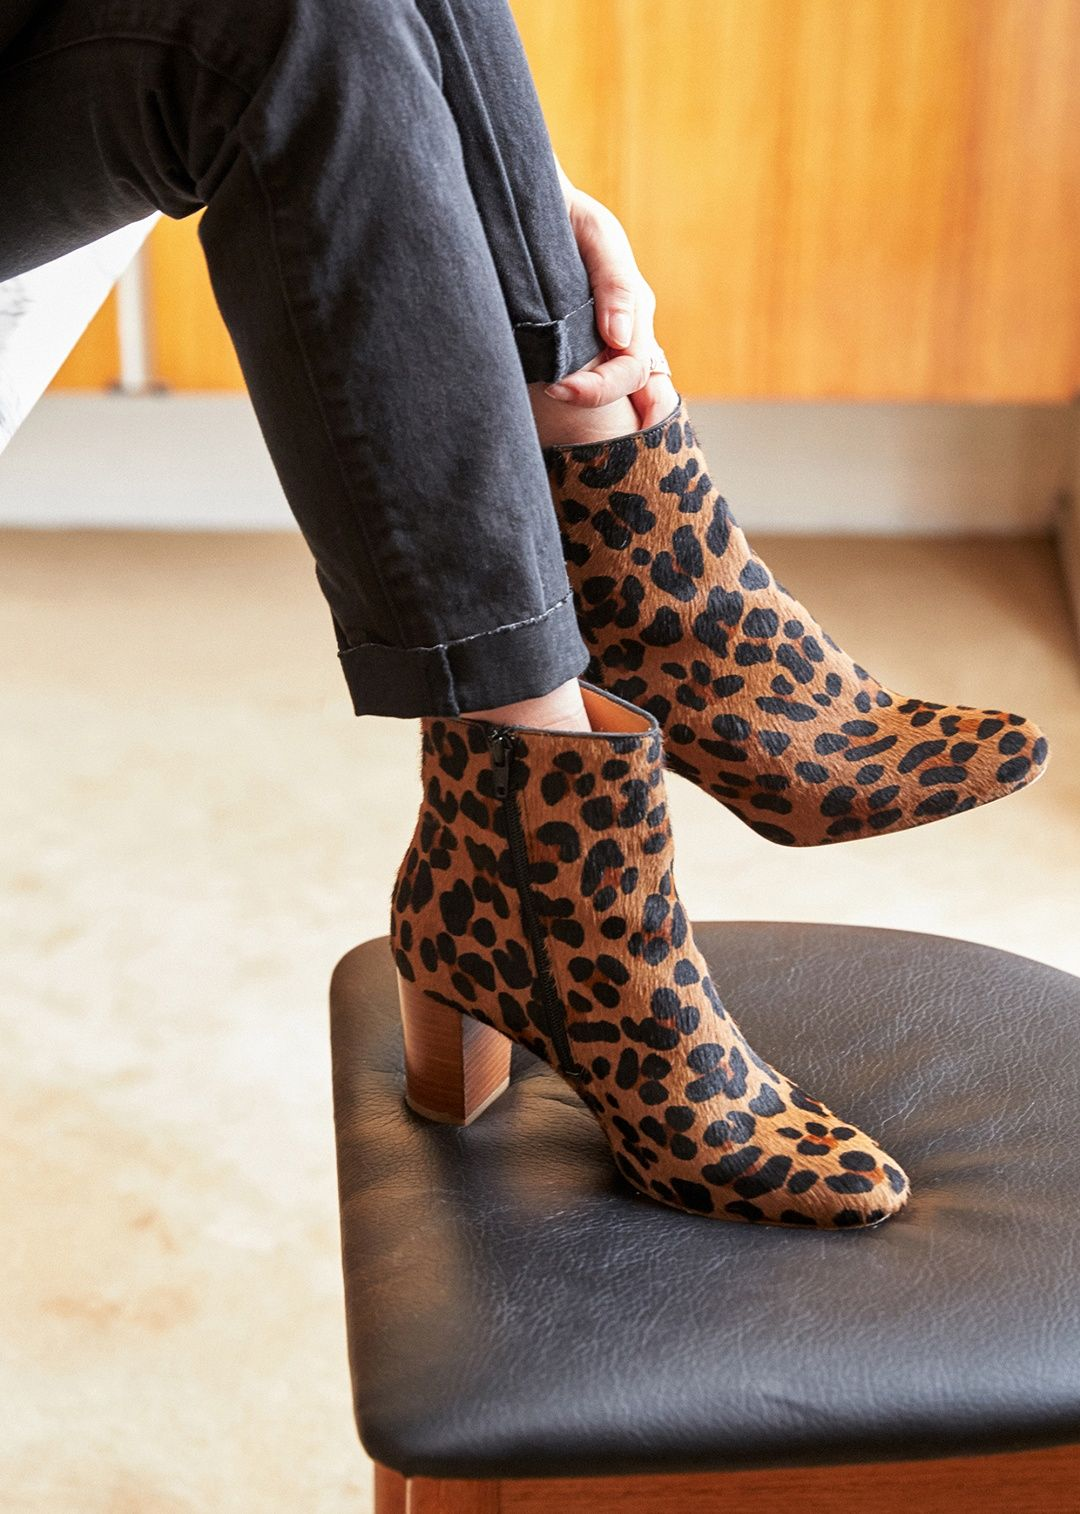 96f1a0ff2c9a Sezane Lea Boots in leopard | Winter inspo | Boots, Fashion, Shoes